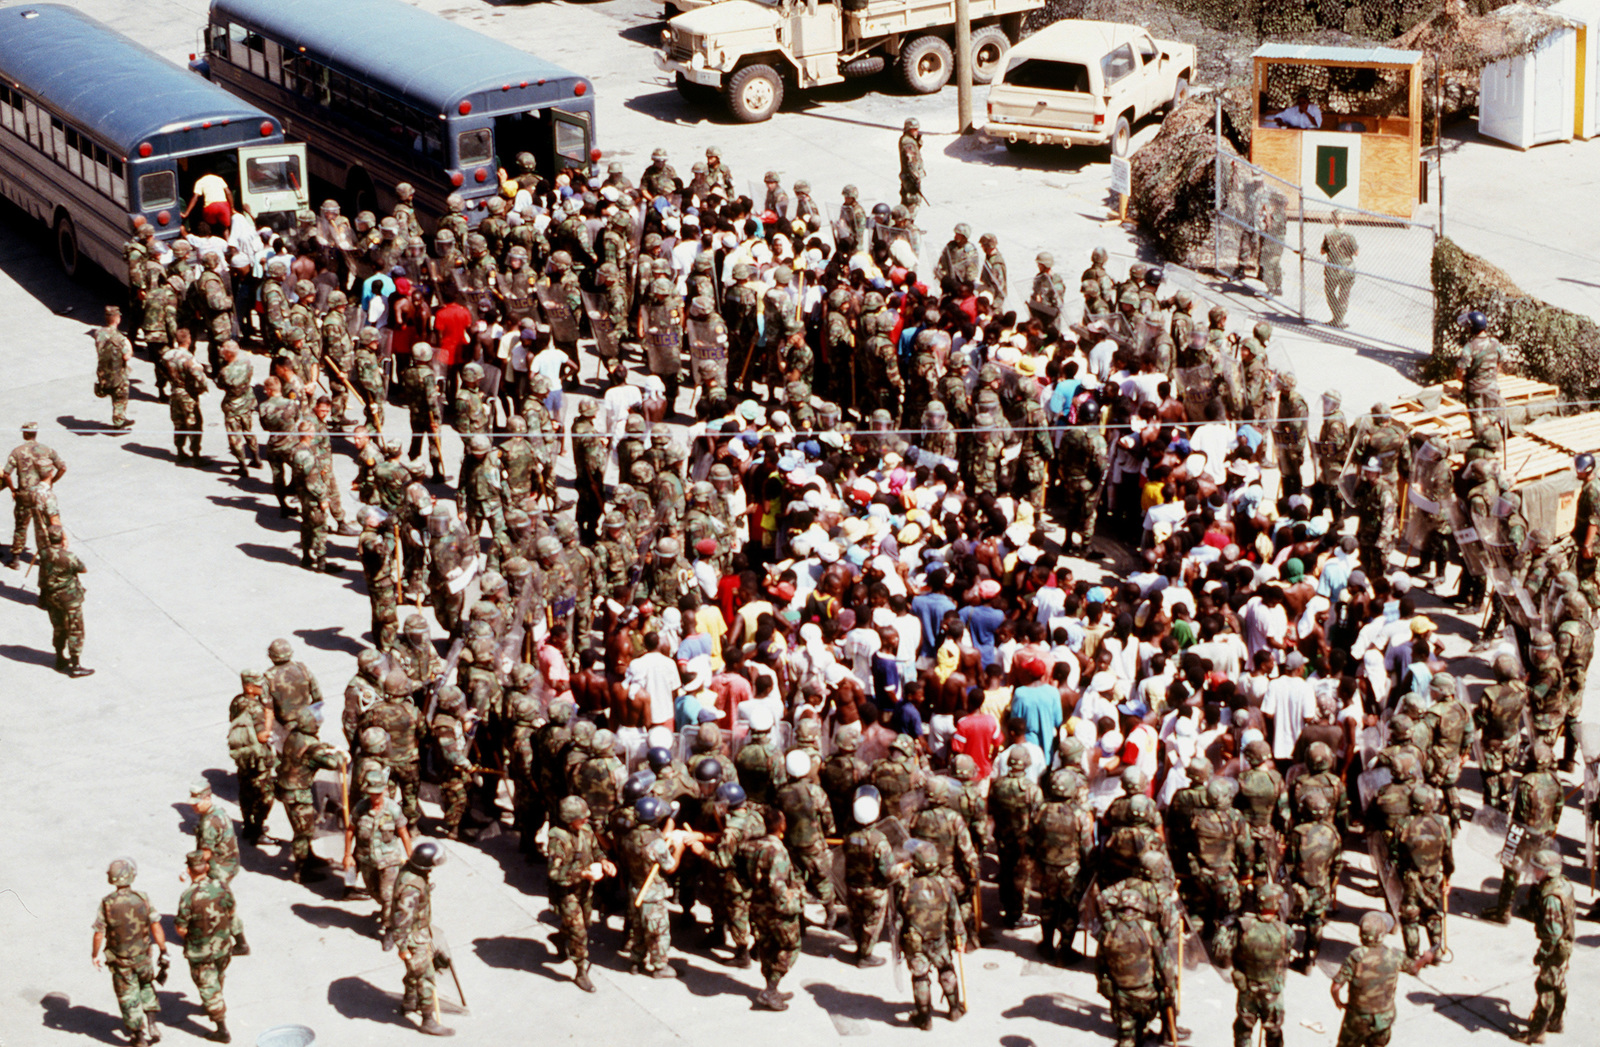 Disruptive Haitians are loaded into buses by MPs in riot gear from the 401st and 64th MP Companies. The Haitians jumped the concertina wire and were promptly surrounded by the soldiers. There was no violence and the Haitians were taken to an isolation camp without incident